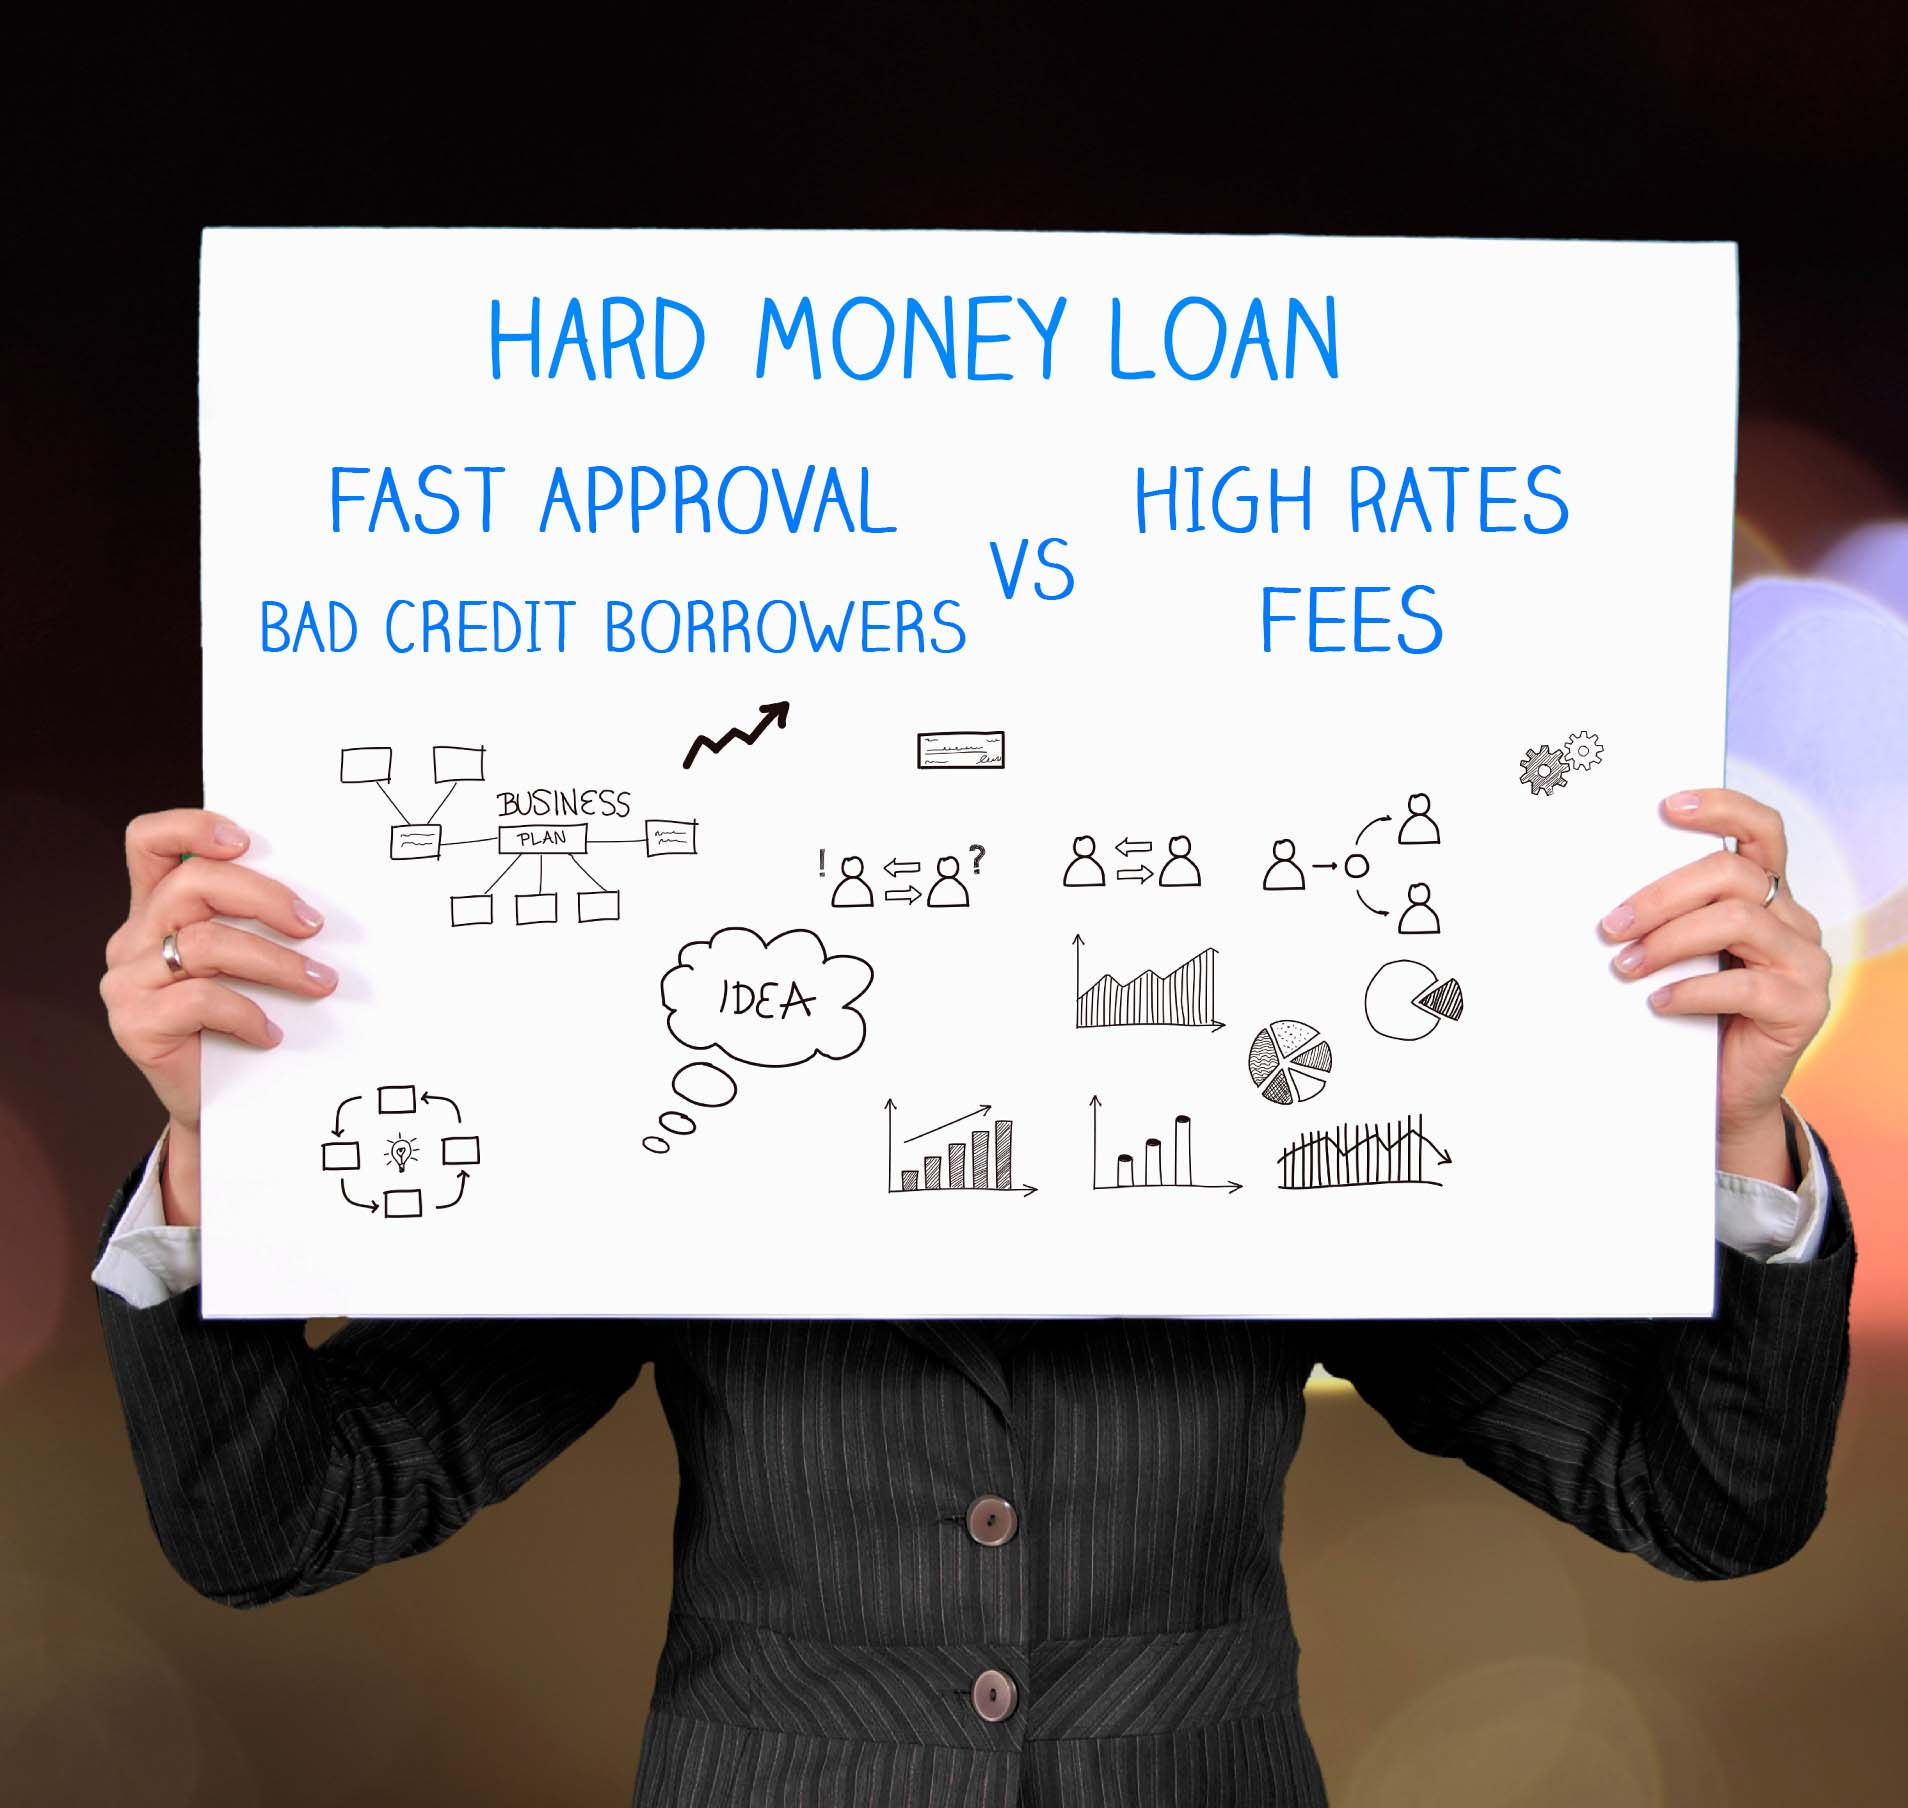 Baltimore city payday loans image 1